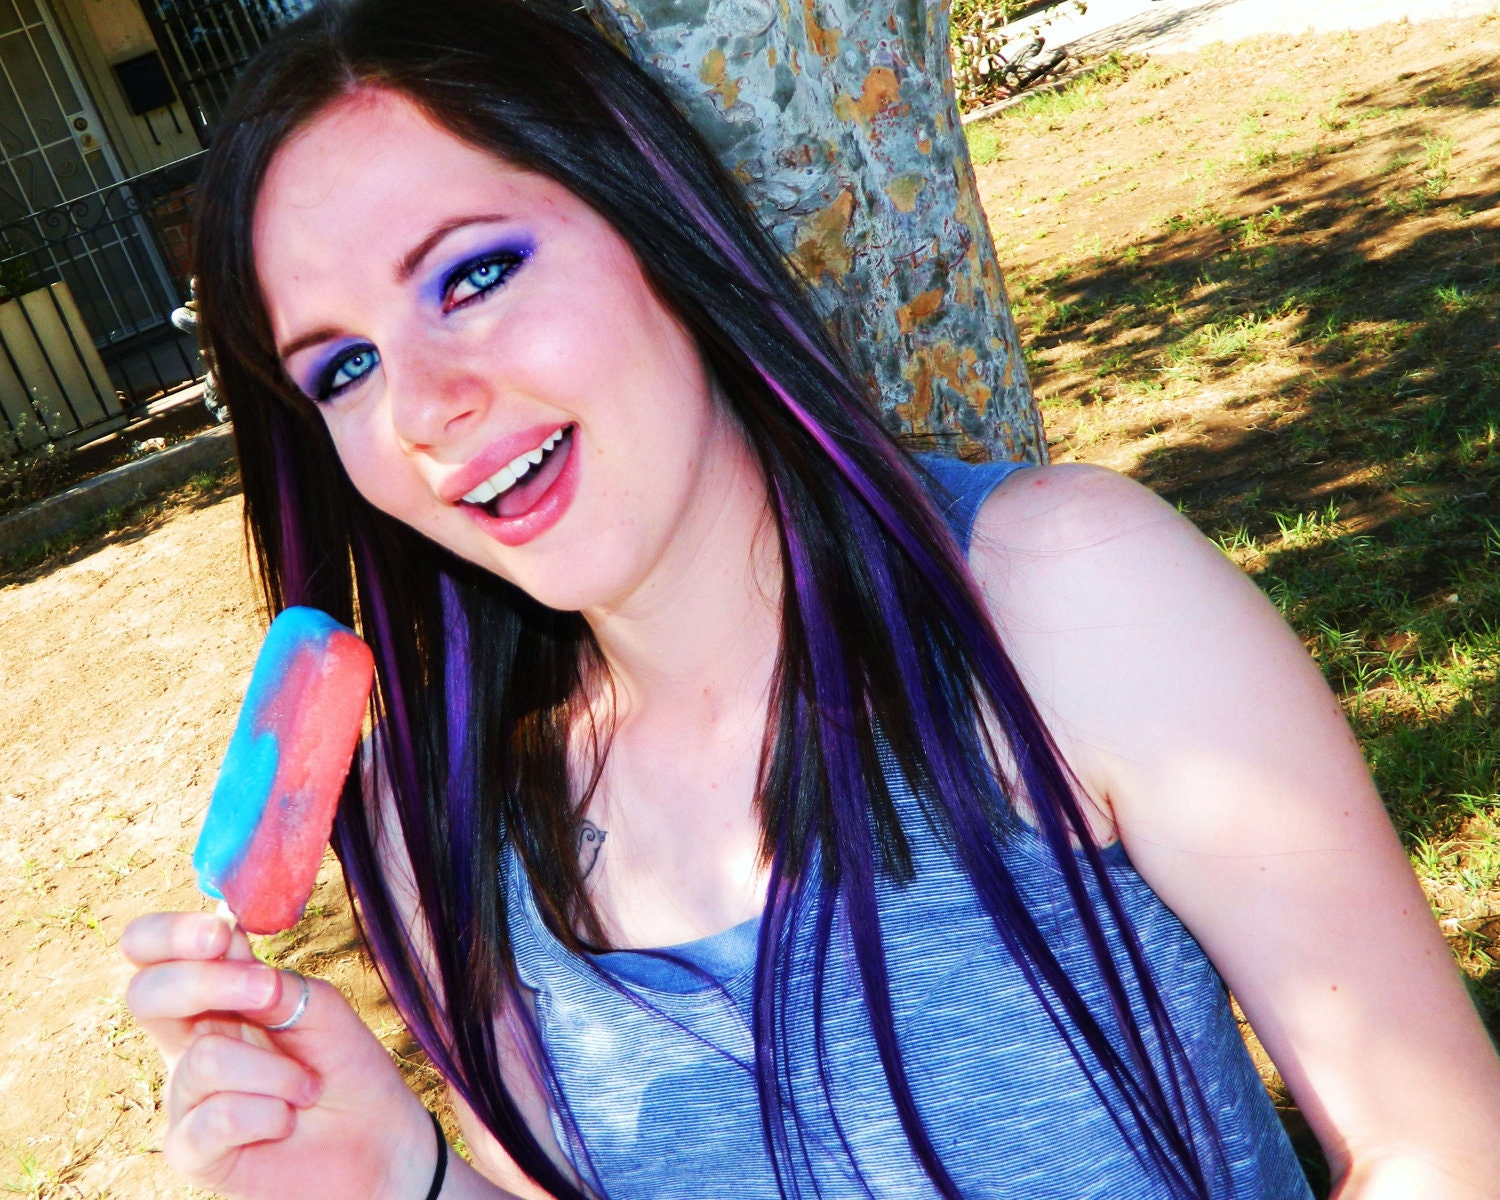 Human Hair Extensions 14 INCH Purple Ombre Extensions ...